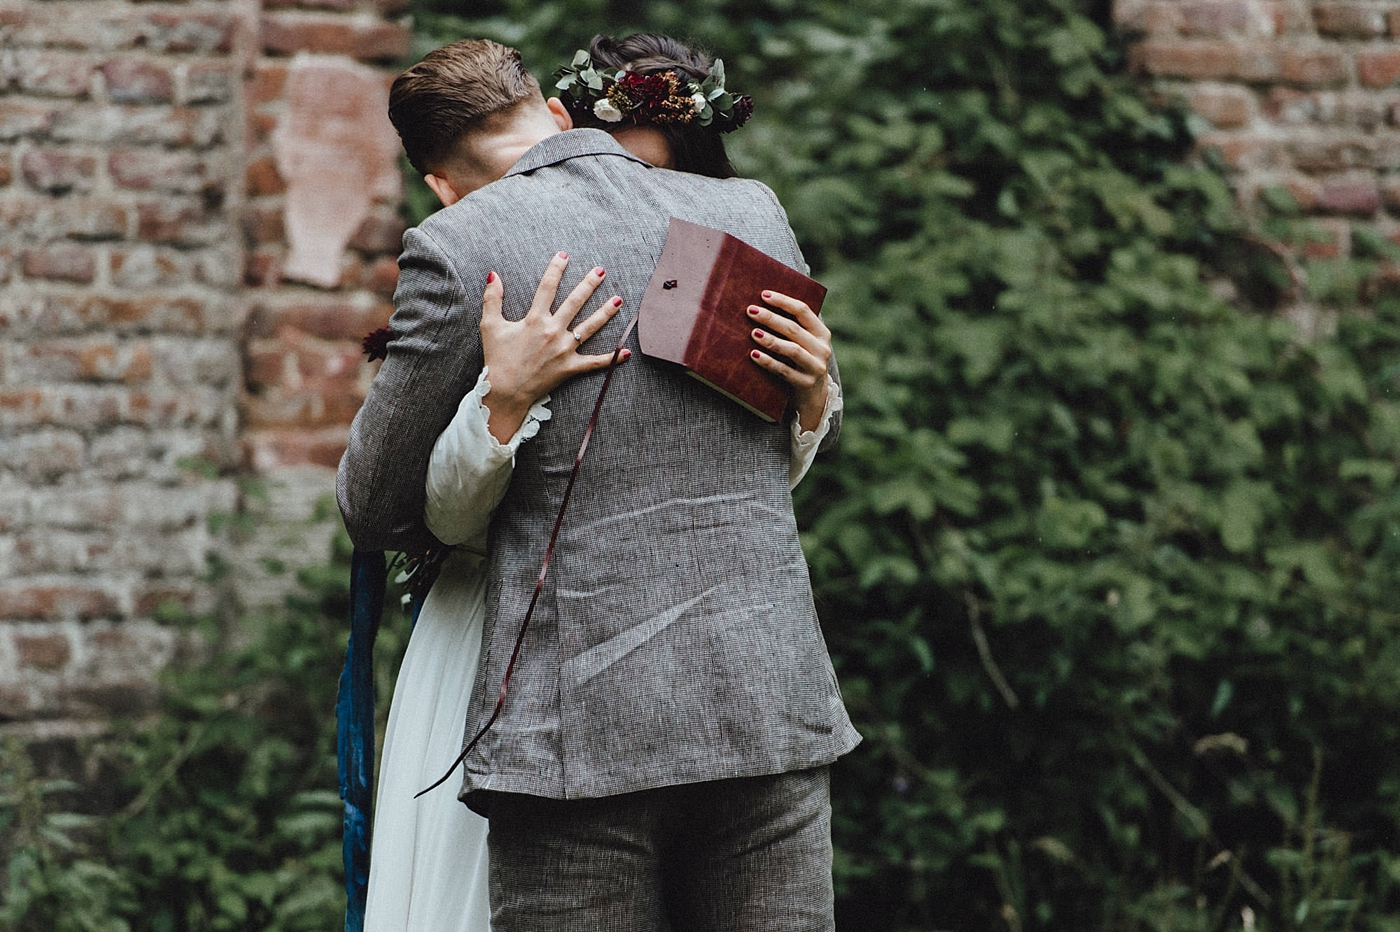 urban-elopement-wedding-118 Merve & Nils emotionales Elopement - Wedding Wesel & Schottlandurban elopement wedding 118 1